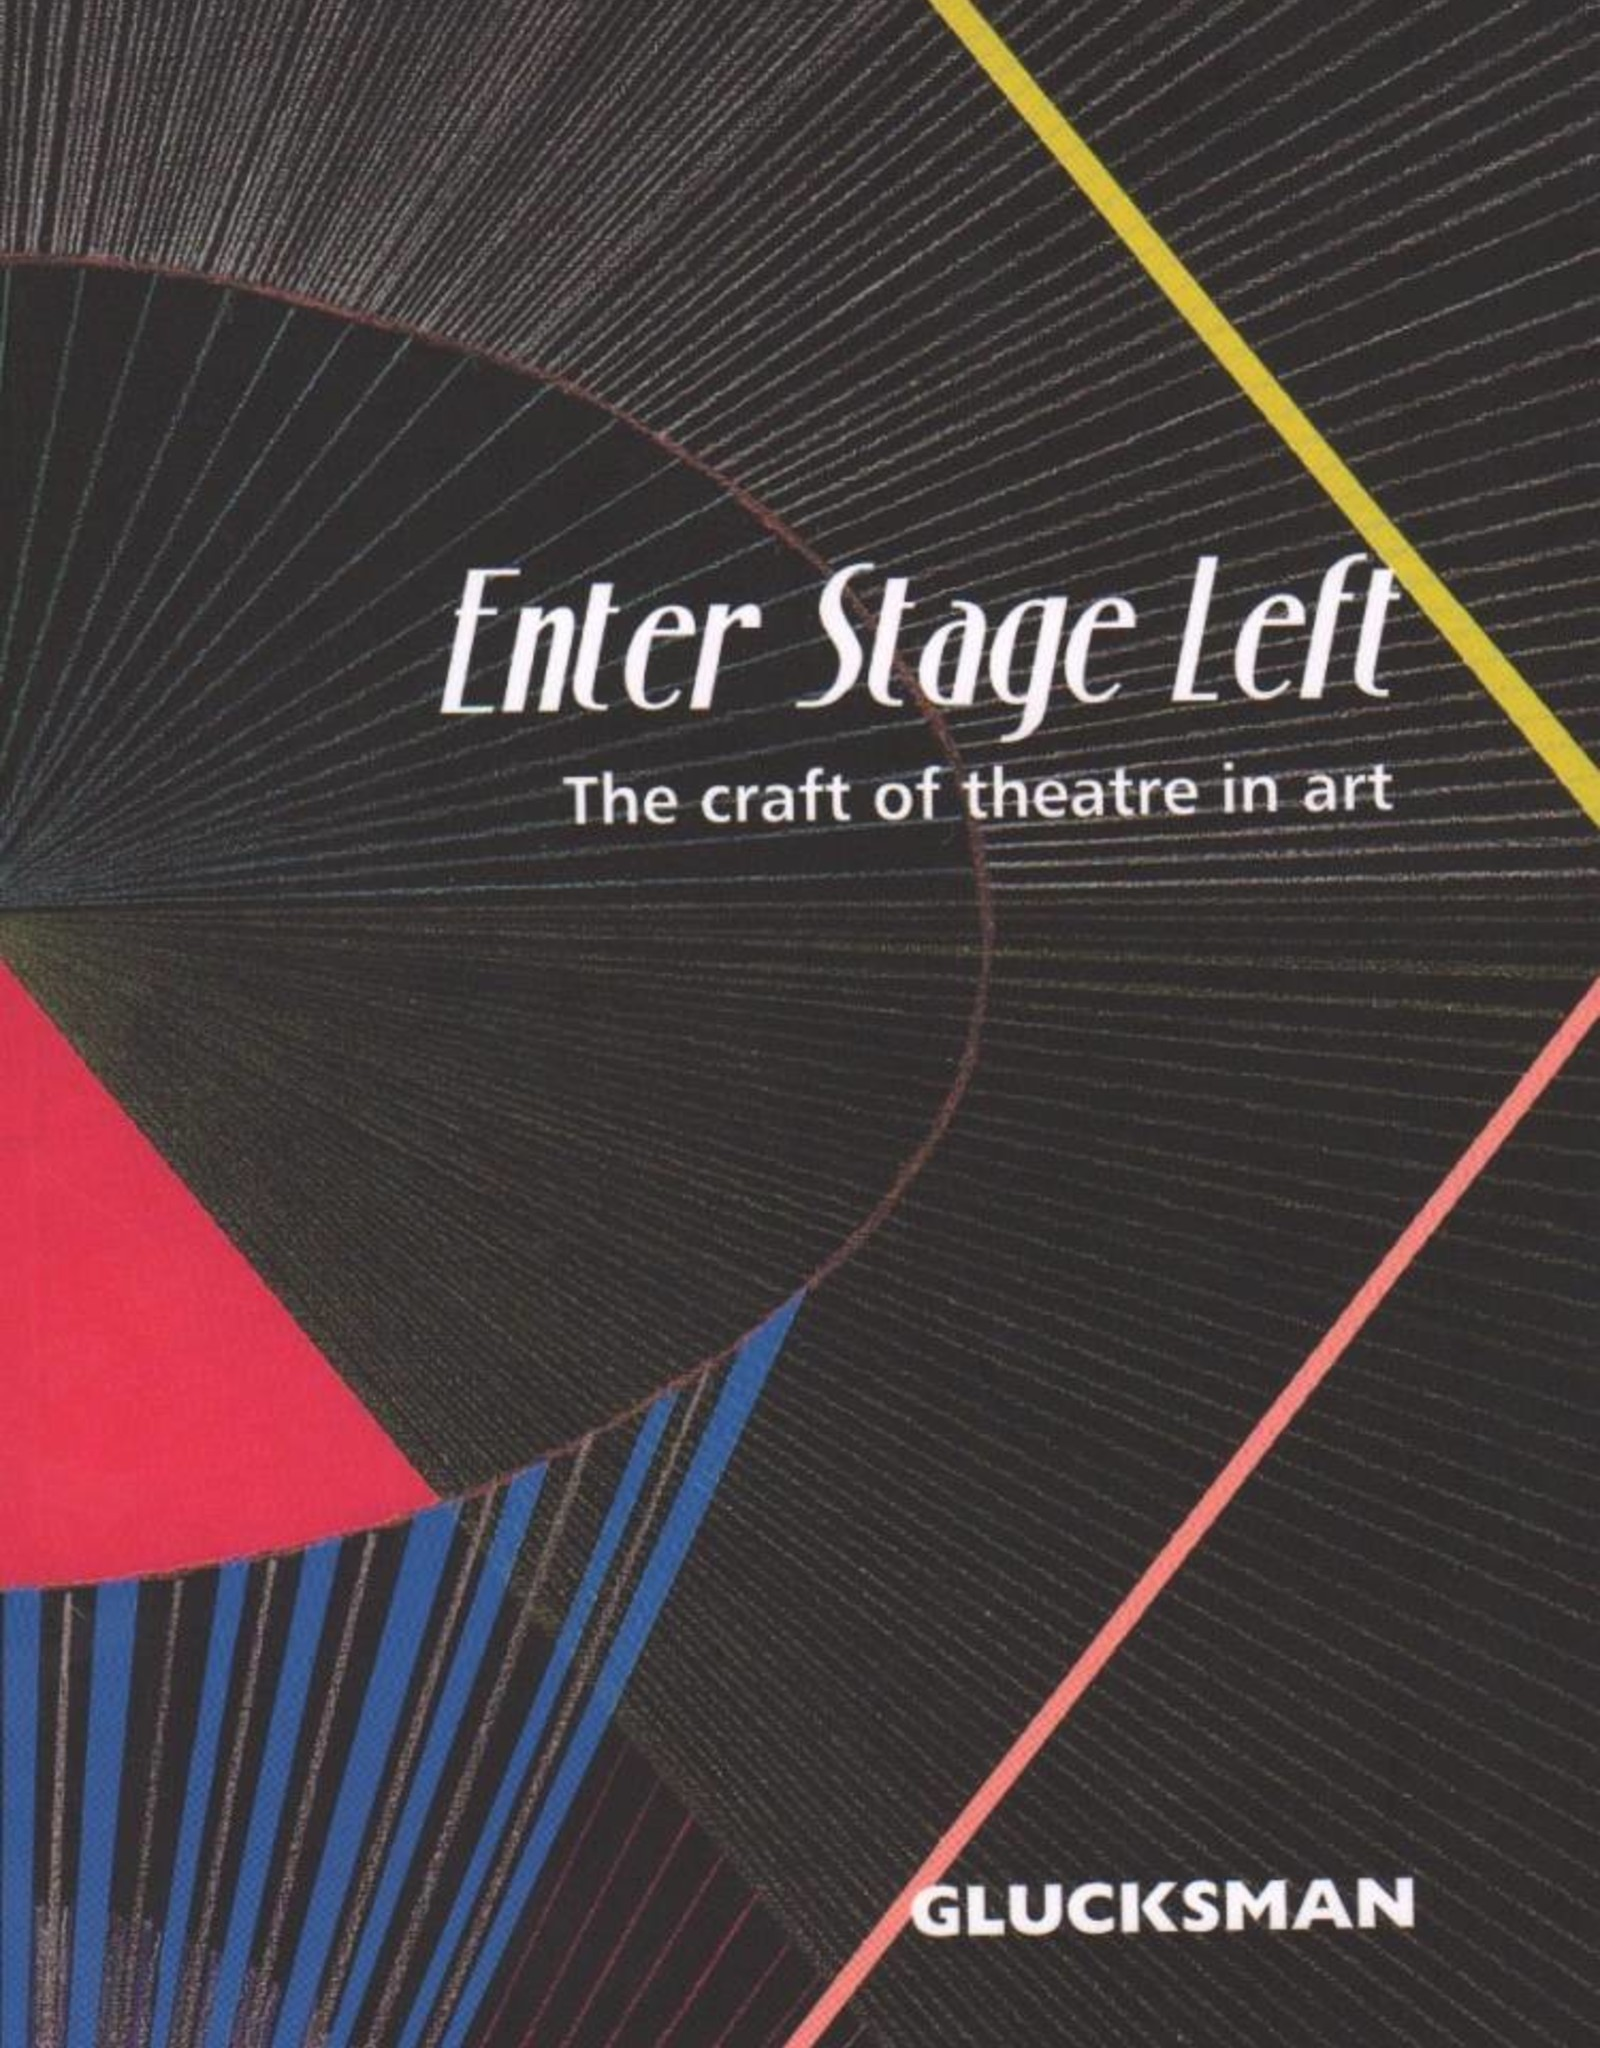 Enter Stage Left catalogue